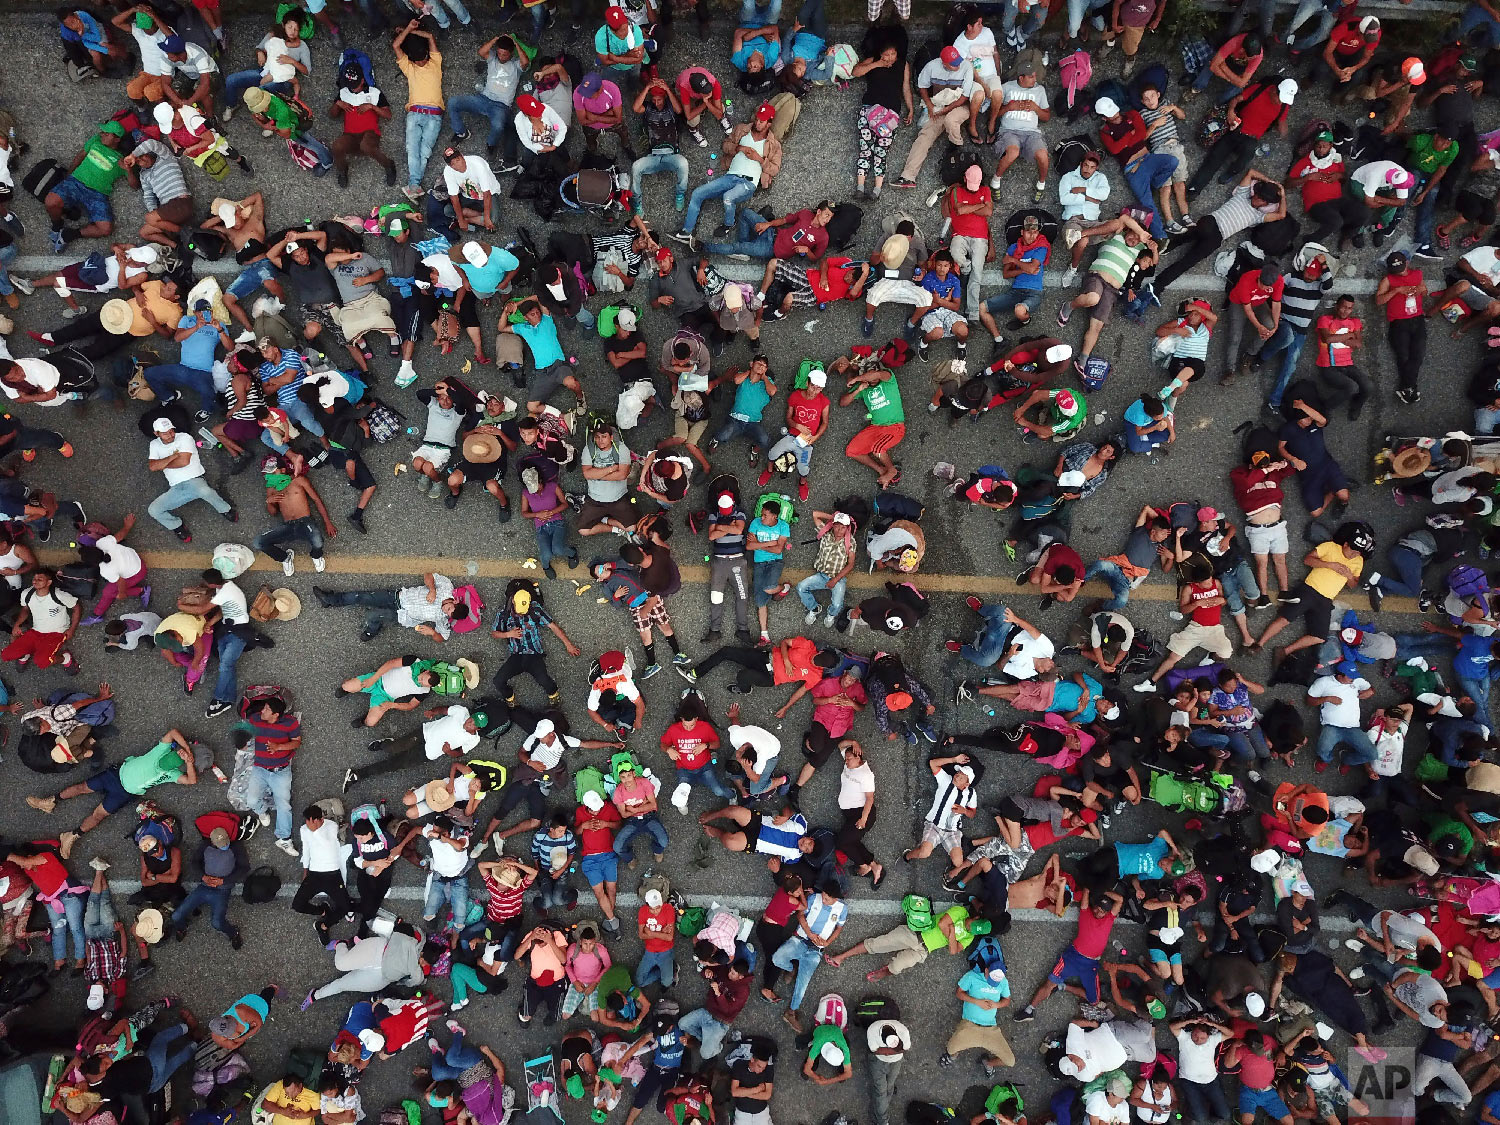 Members of a migrant caravan bound for the United States rest on a road between the Mexican states of Chiapas and Oaxaca after federal police briefly blocked them outside the town of Arriaga, on Oct. 27, 2018. (AP Photo/Rodrigo Abd)